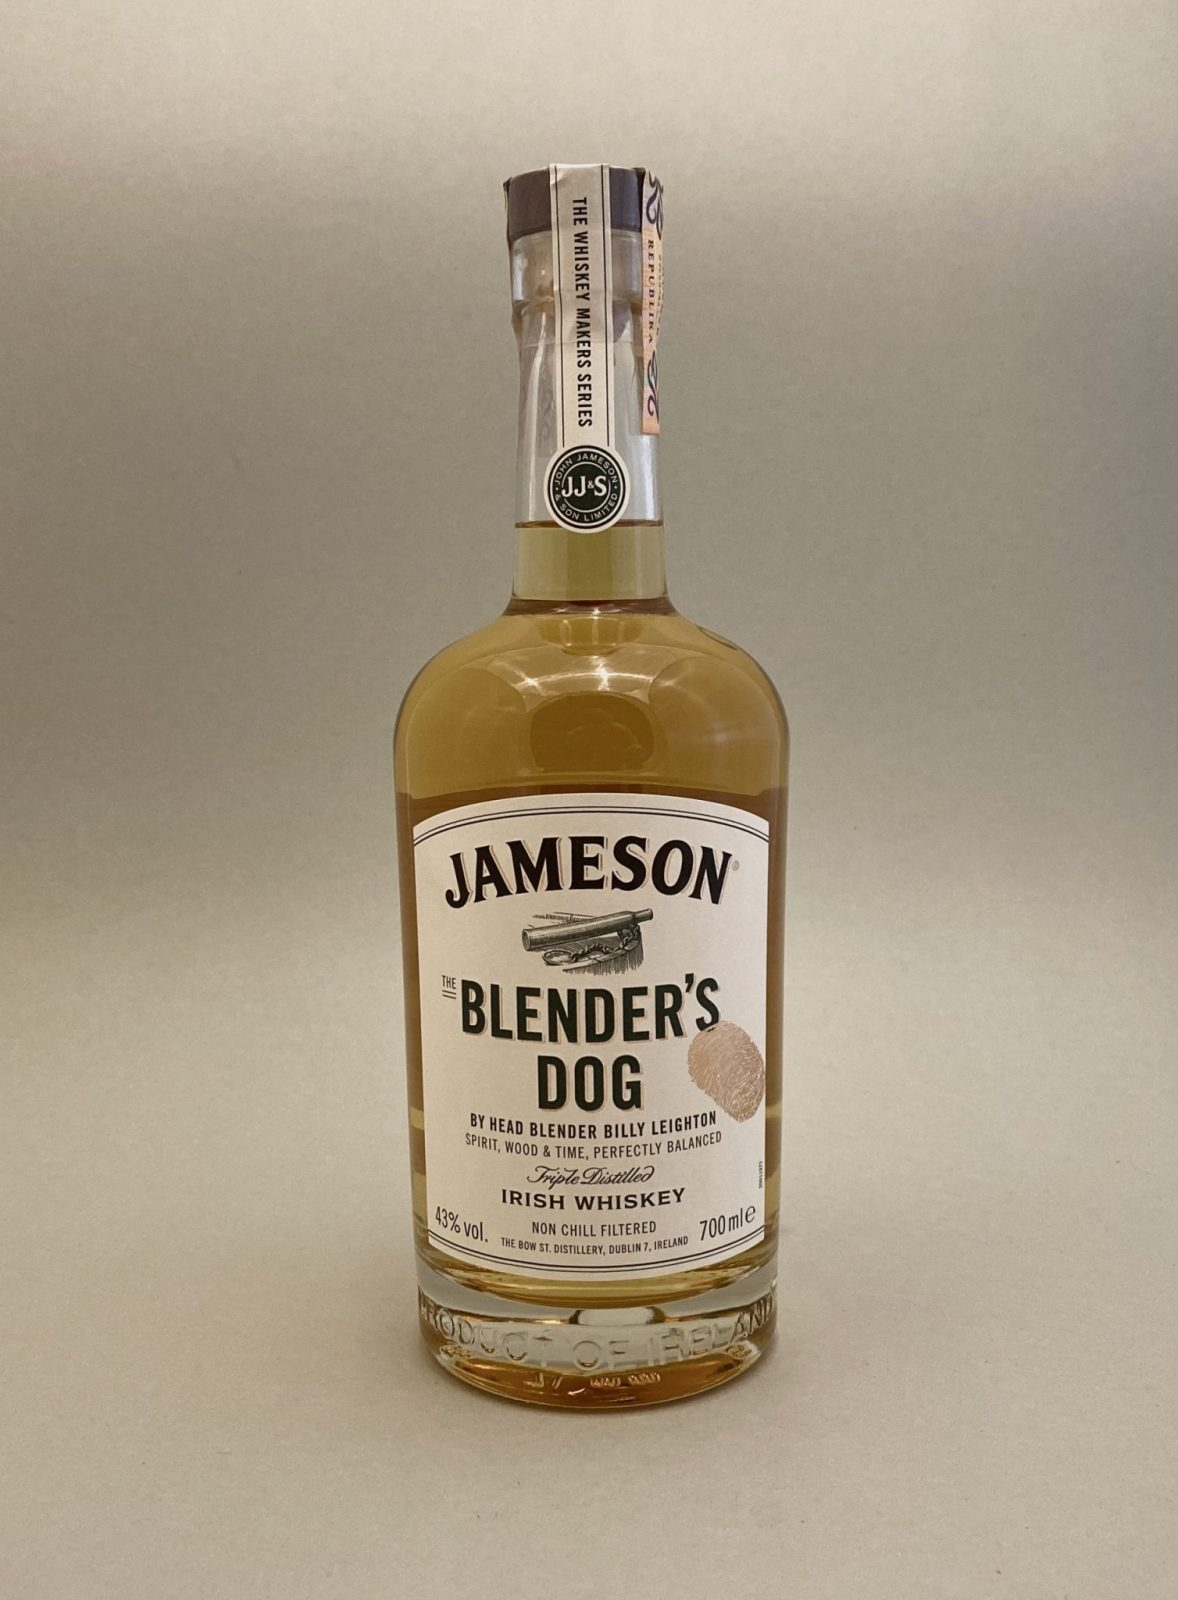 Jameson Makers Blender's Dog 43%, Bottleshop Sunny wines slnecnice mesto, petrzalka, Írska Whiskey, rozvoz alkoholu, eshop